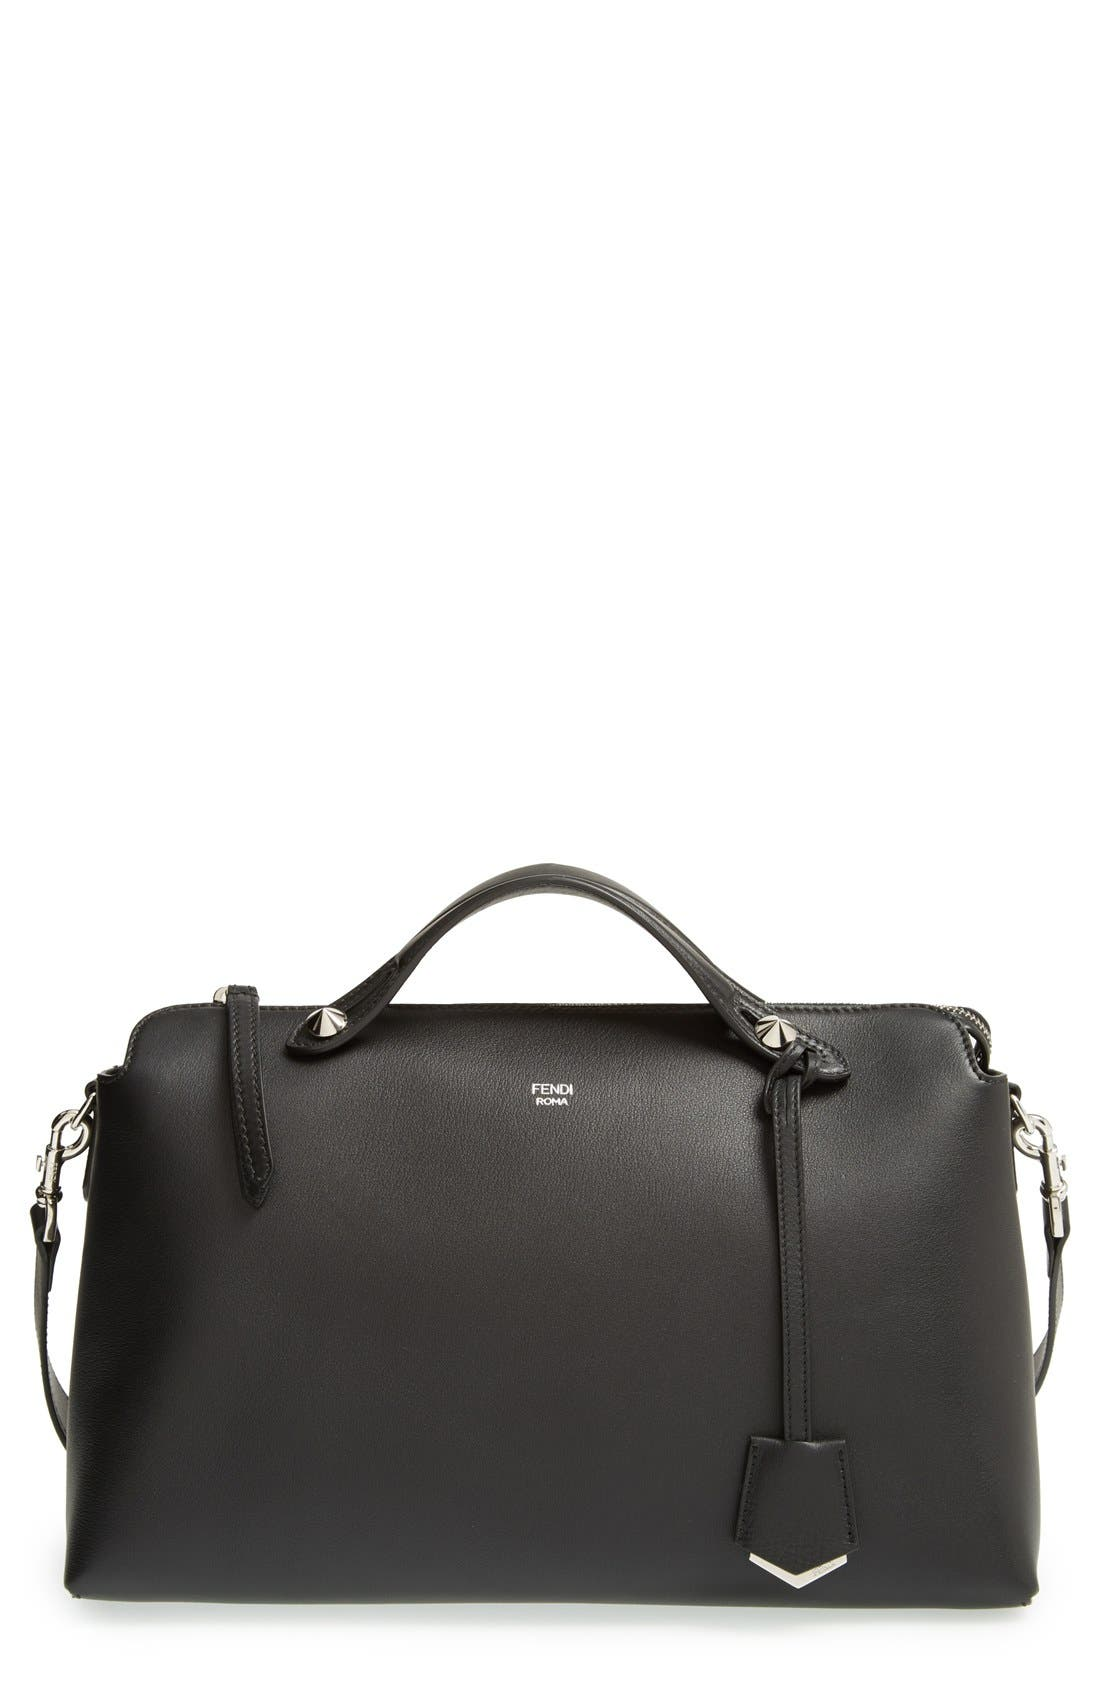 Main Image - Fendi Large by the Way Leather Shoulder Bag